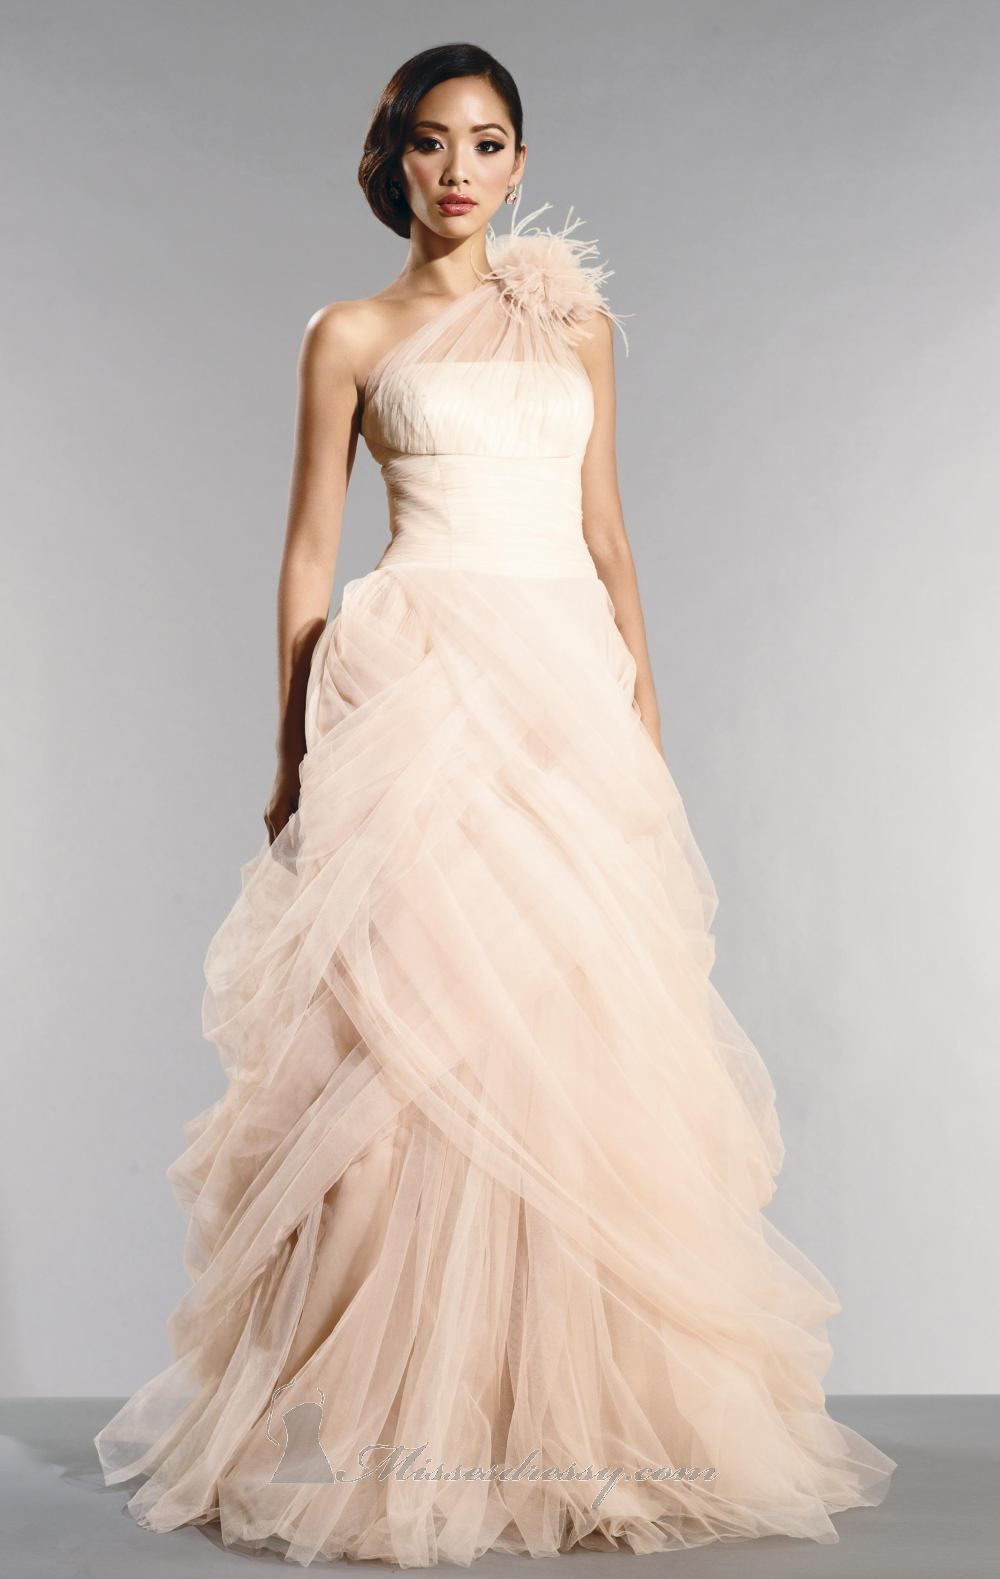 Fluffy wedding dresses  Dresses From the s  The girly look pair with a sof t  neutral